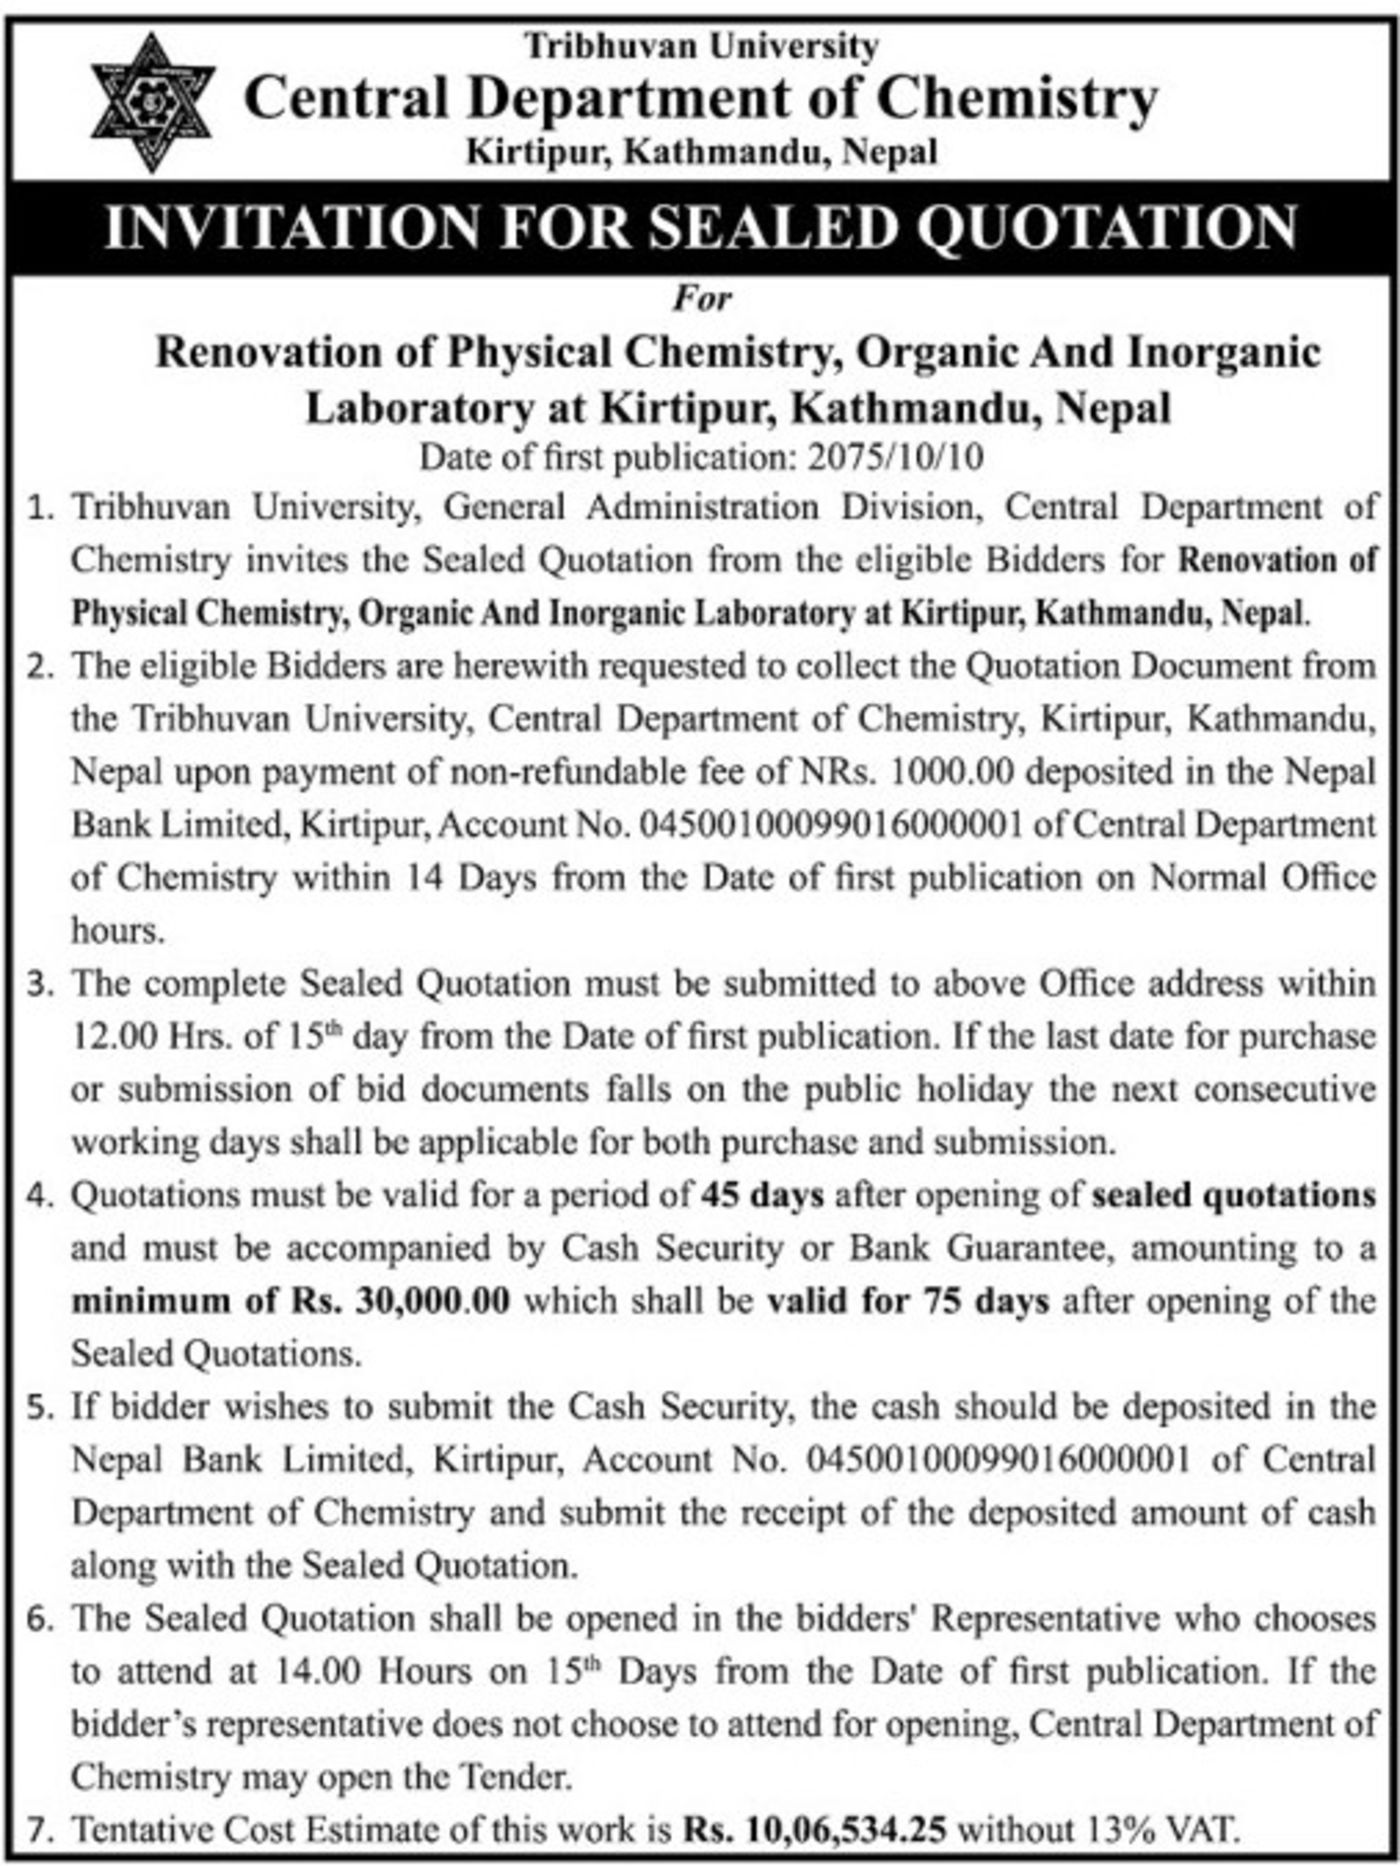 Bids and Tenders Nepal - Invitation For Sealed Quotation